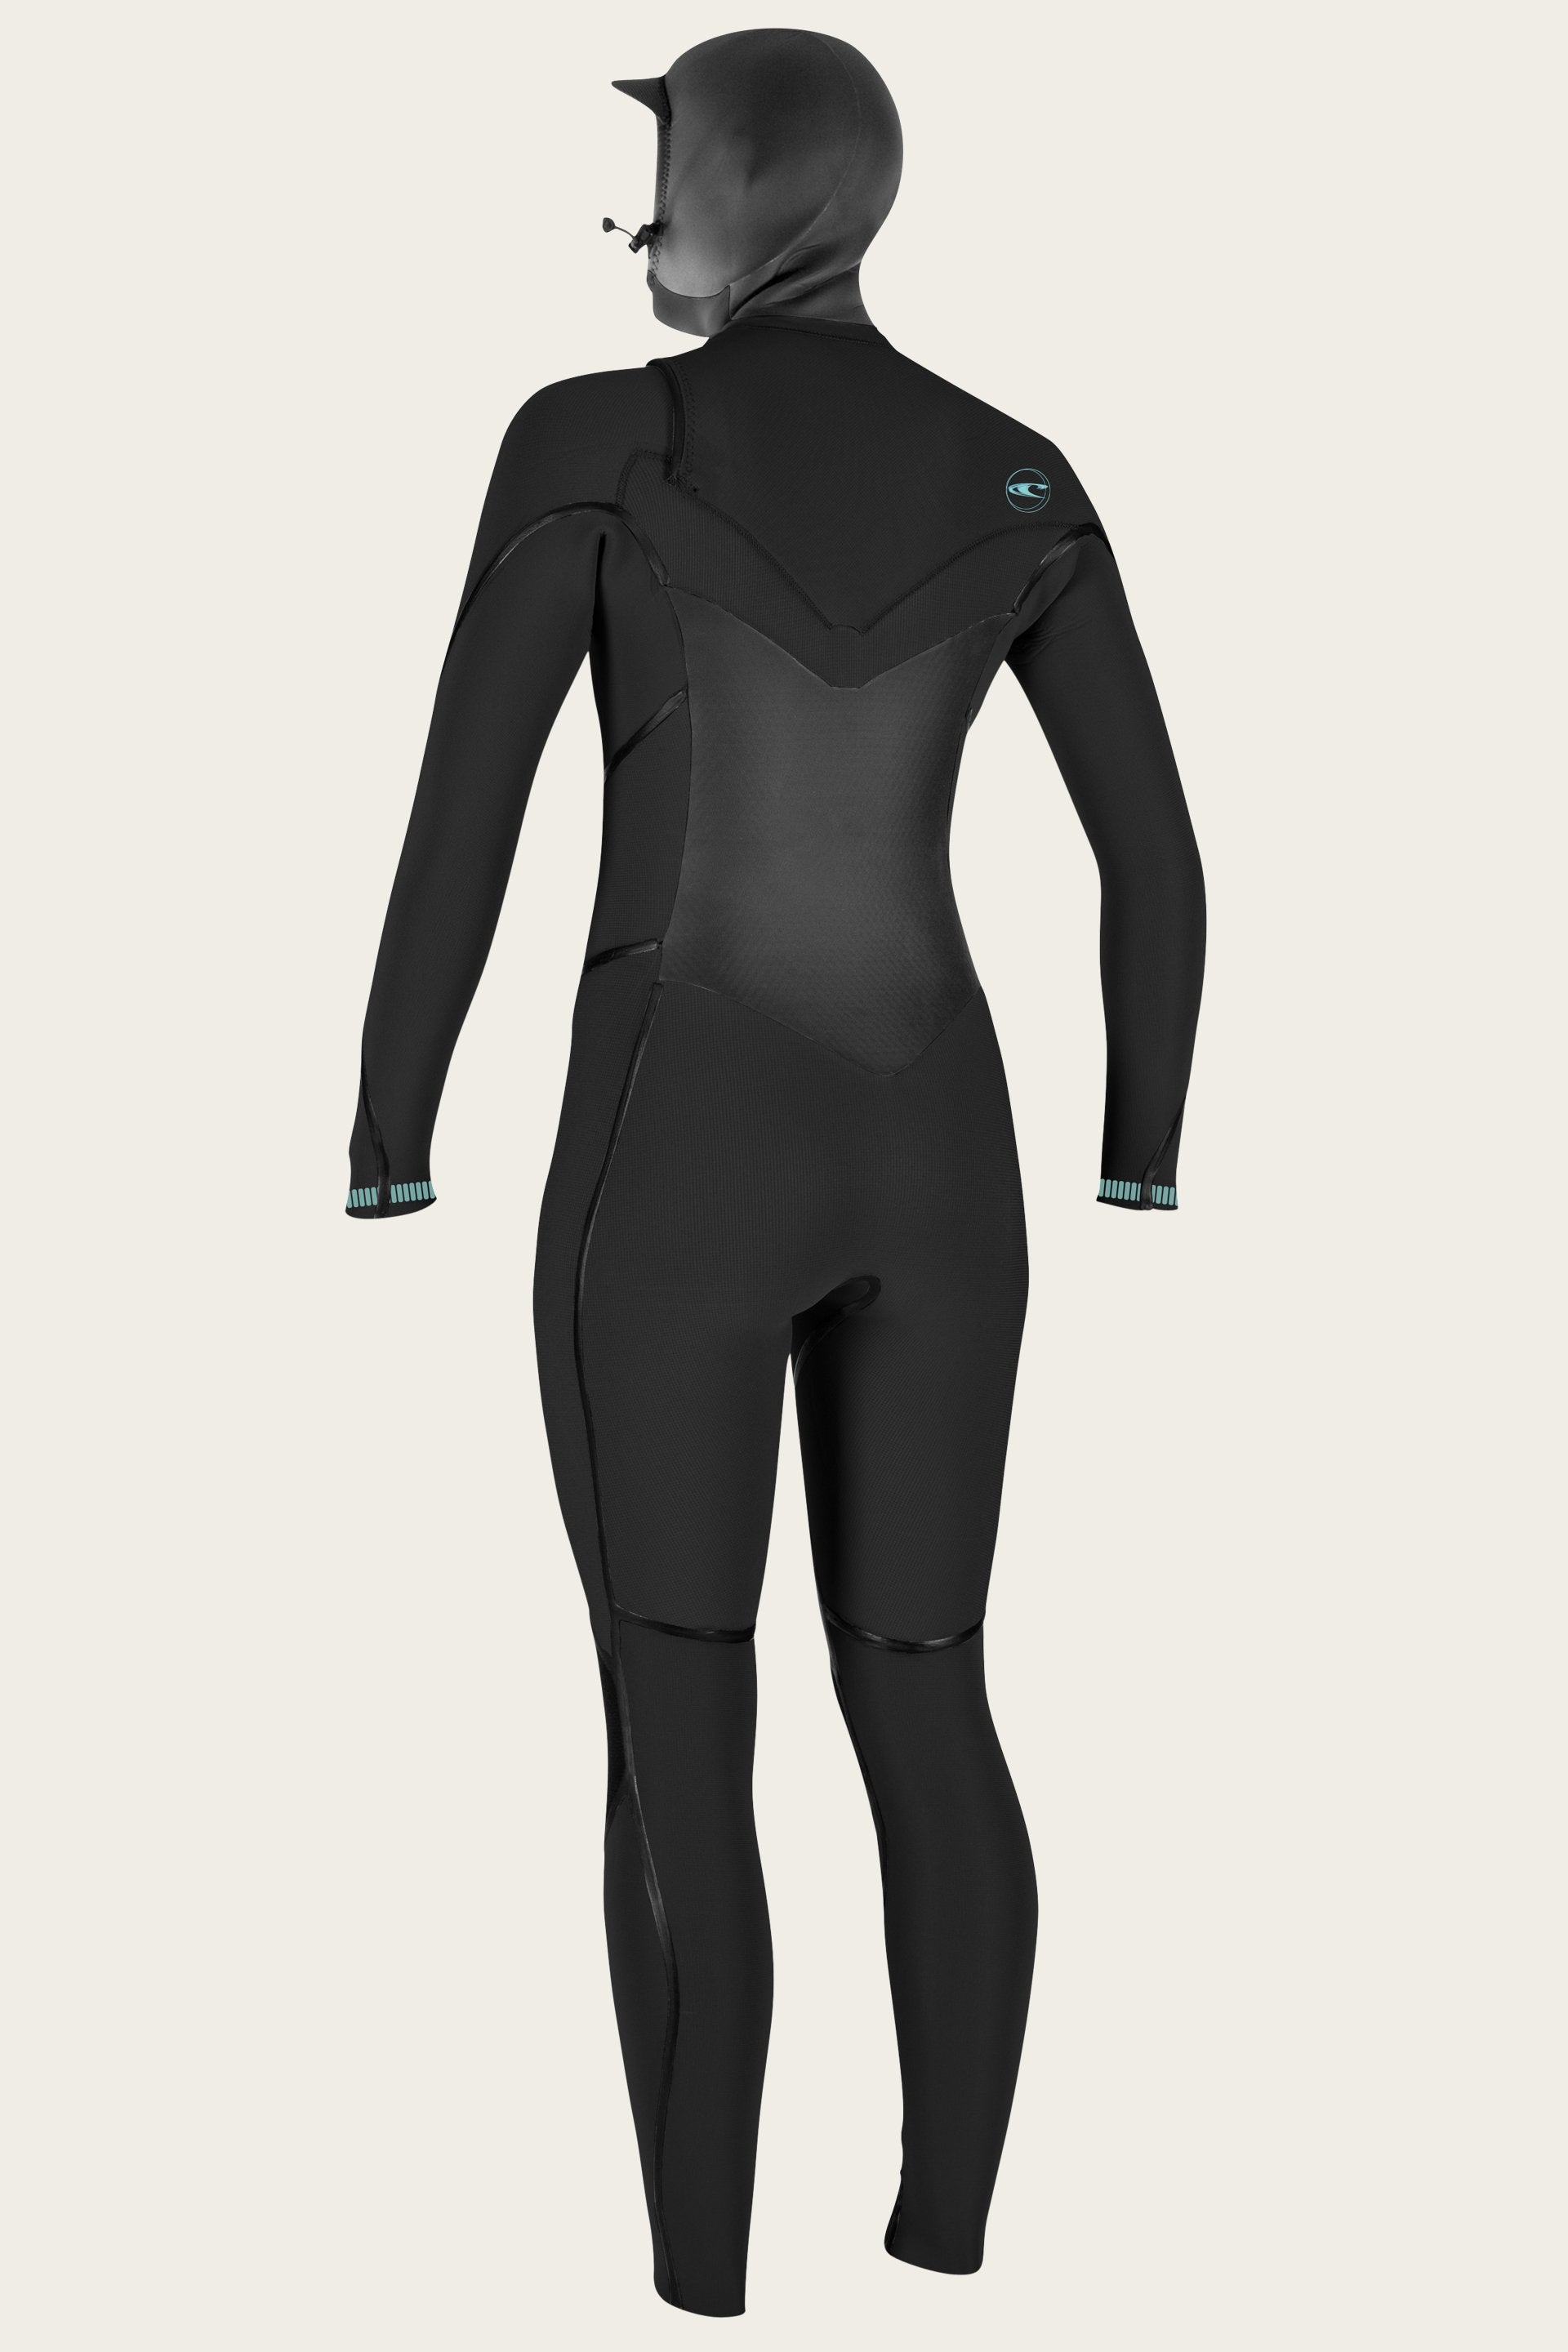 O'Neill Womens Psycho Tech 5.5/4mm+ Hooded Wetsuit - Chest Zip